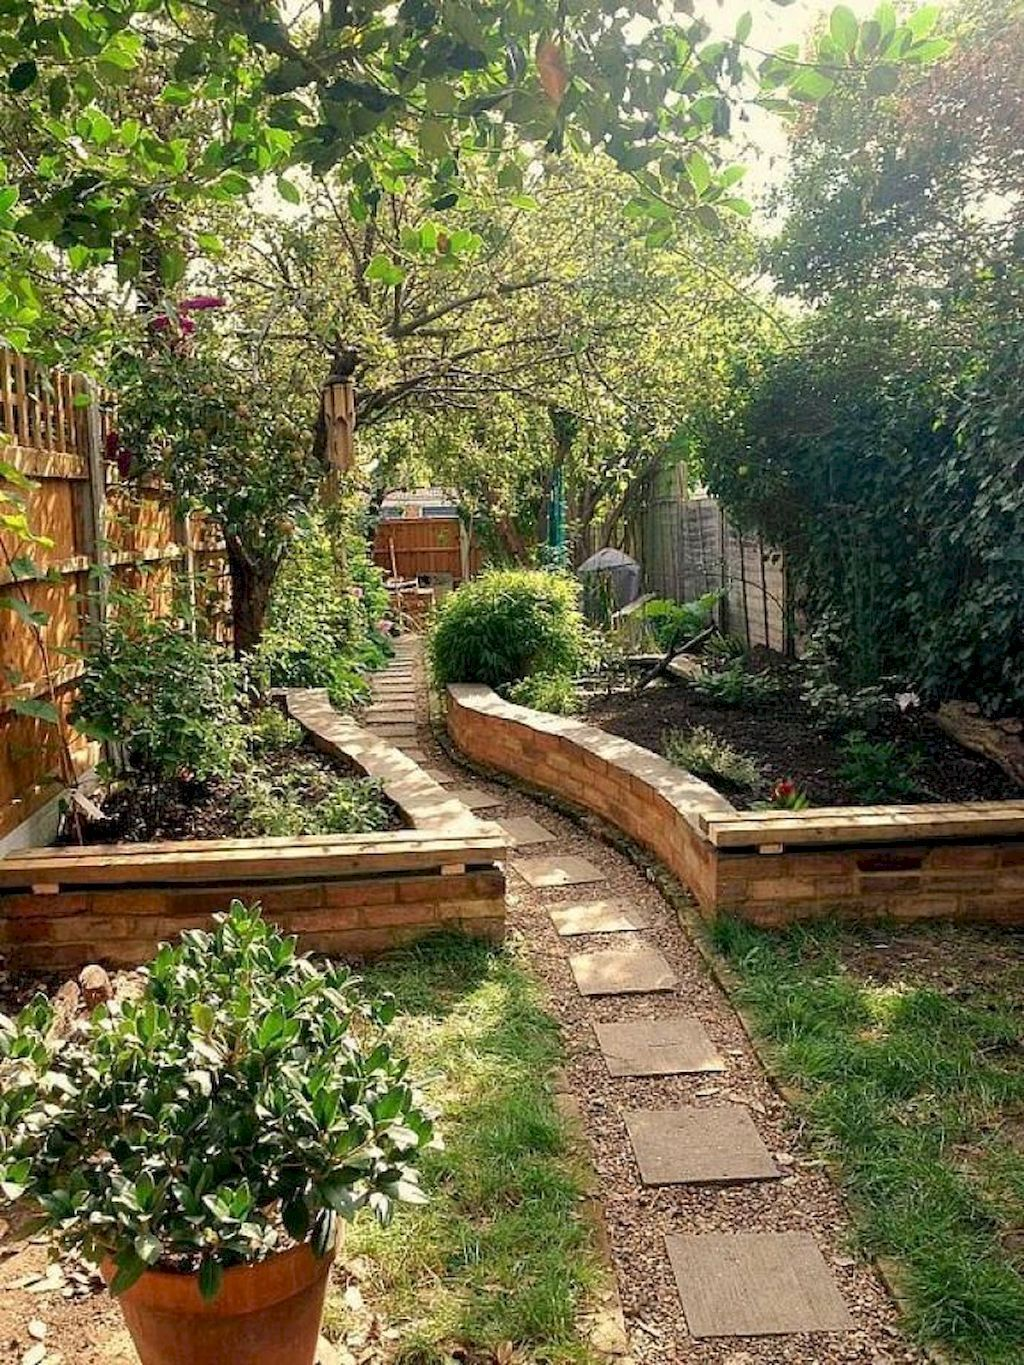 Backyard Landscaping Ideas Browse Landscapes As Well As Gardens Discover New Small Garden Landscape Small Garden Landscape Design Small Backyard Landscaping